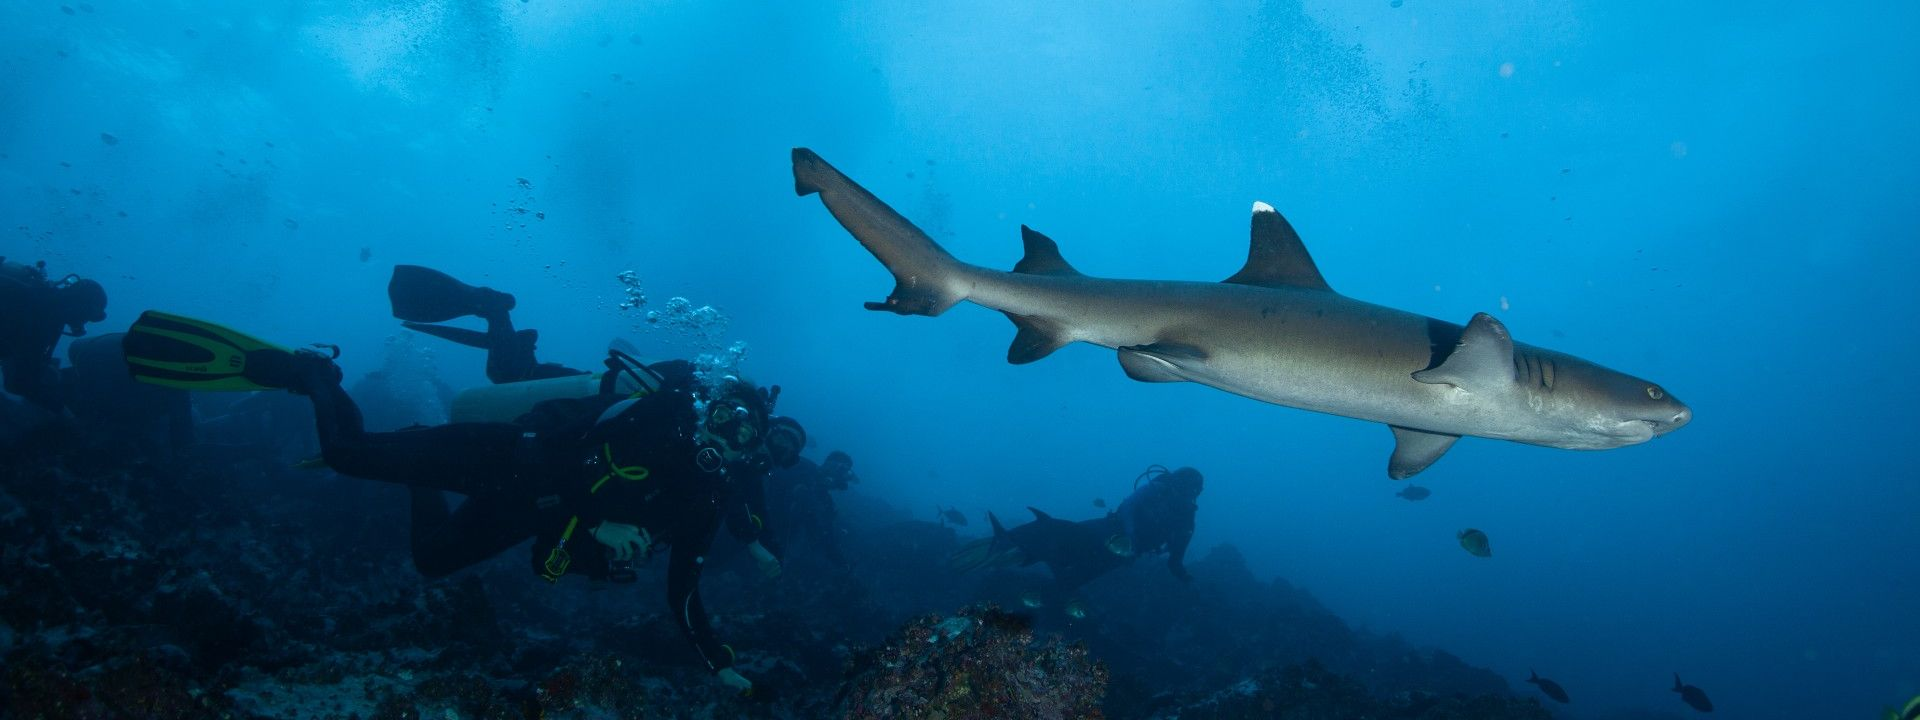 Diving in Bali - Gili Mimpang with Sharks